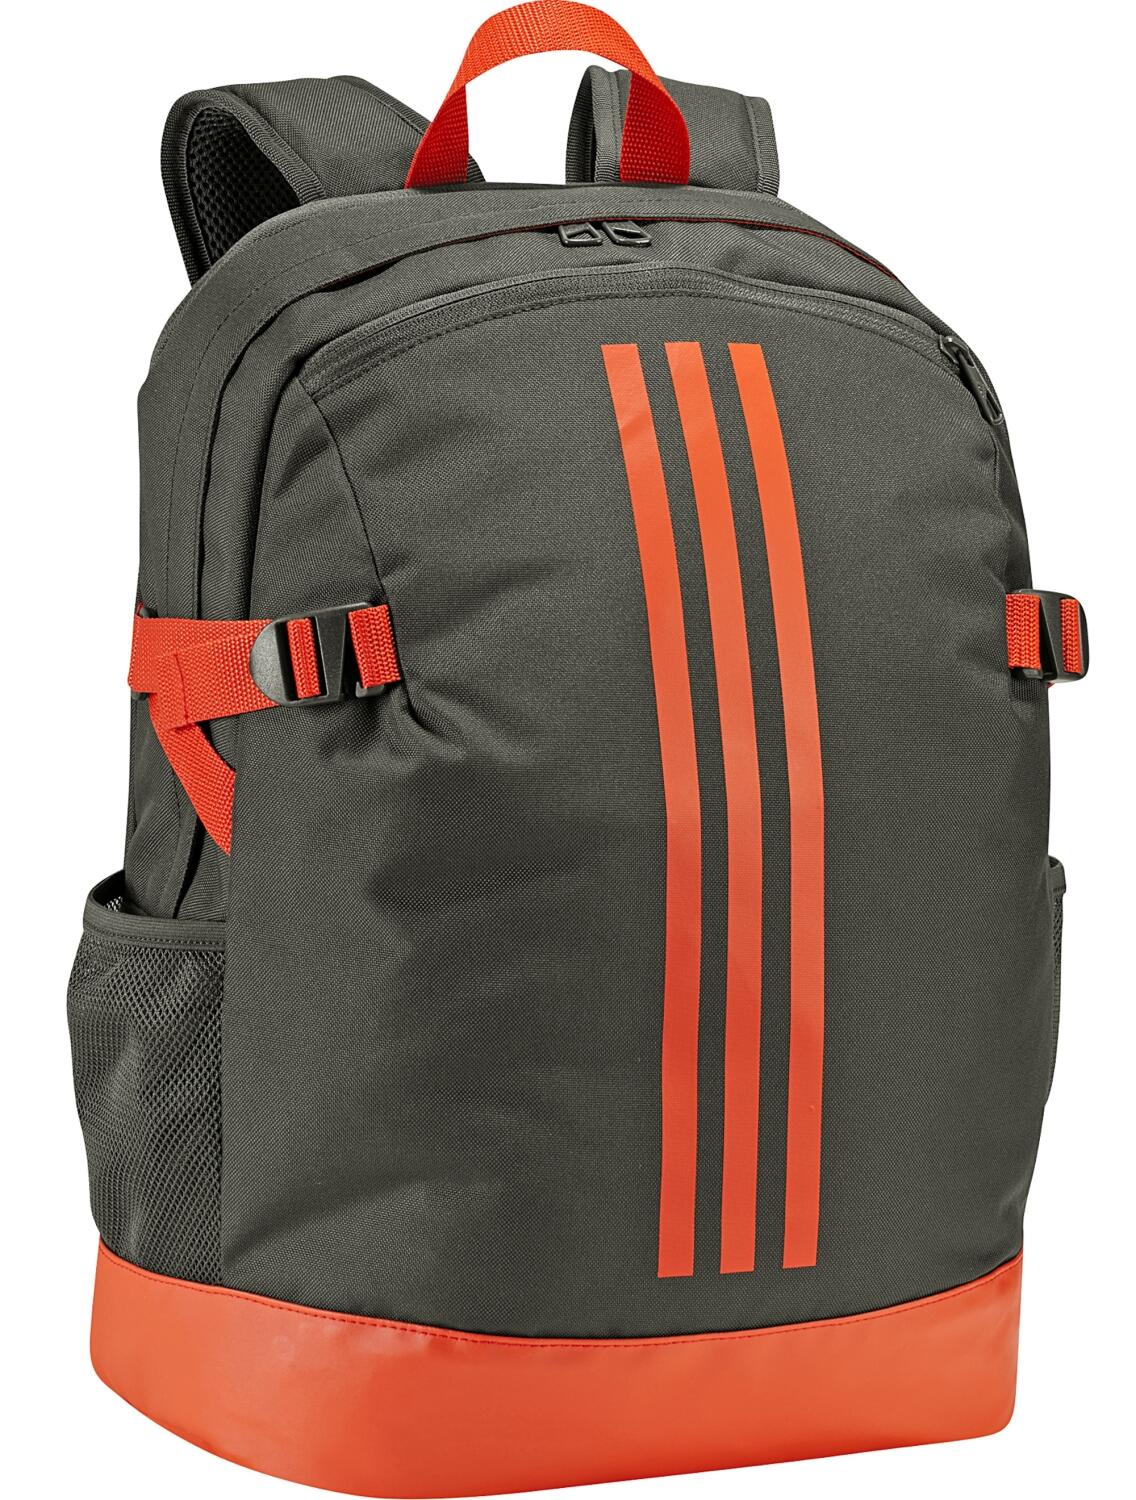 adidas-3-stripes-backpack-power-iv-m-rucksack-farbe-night-cargo-active-orange-active-orange-